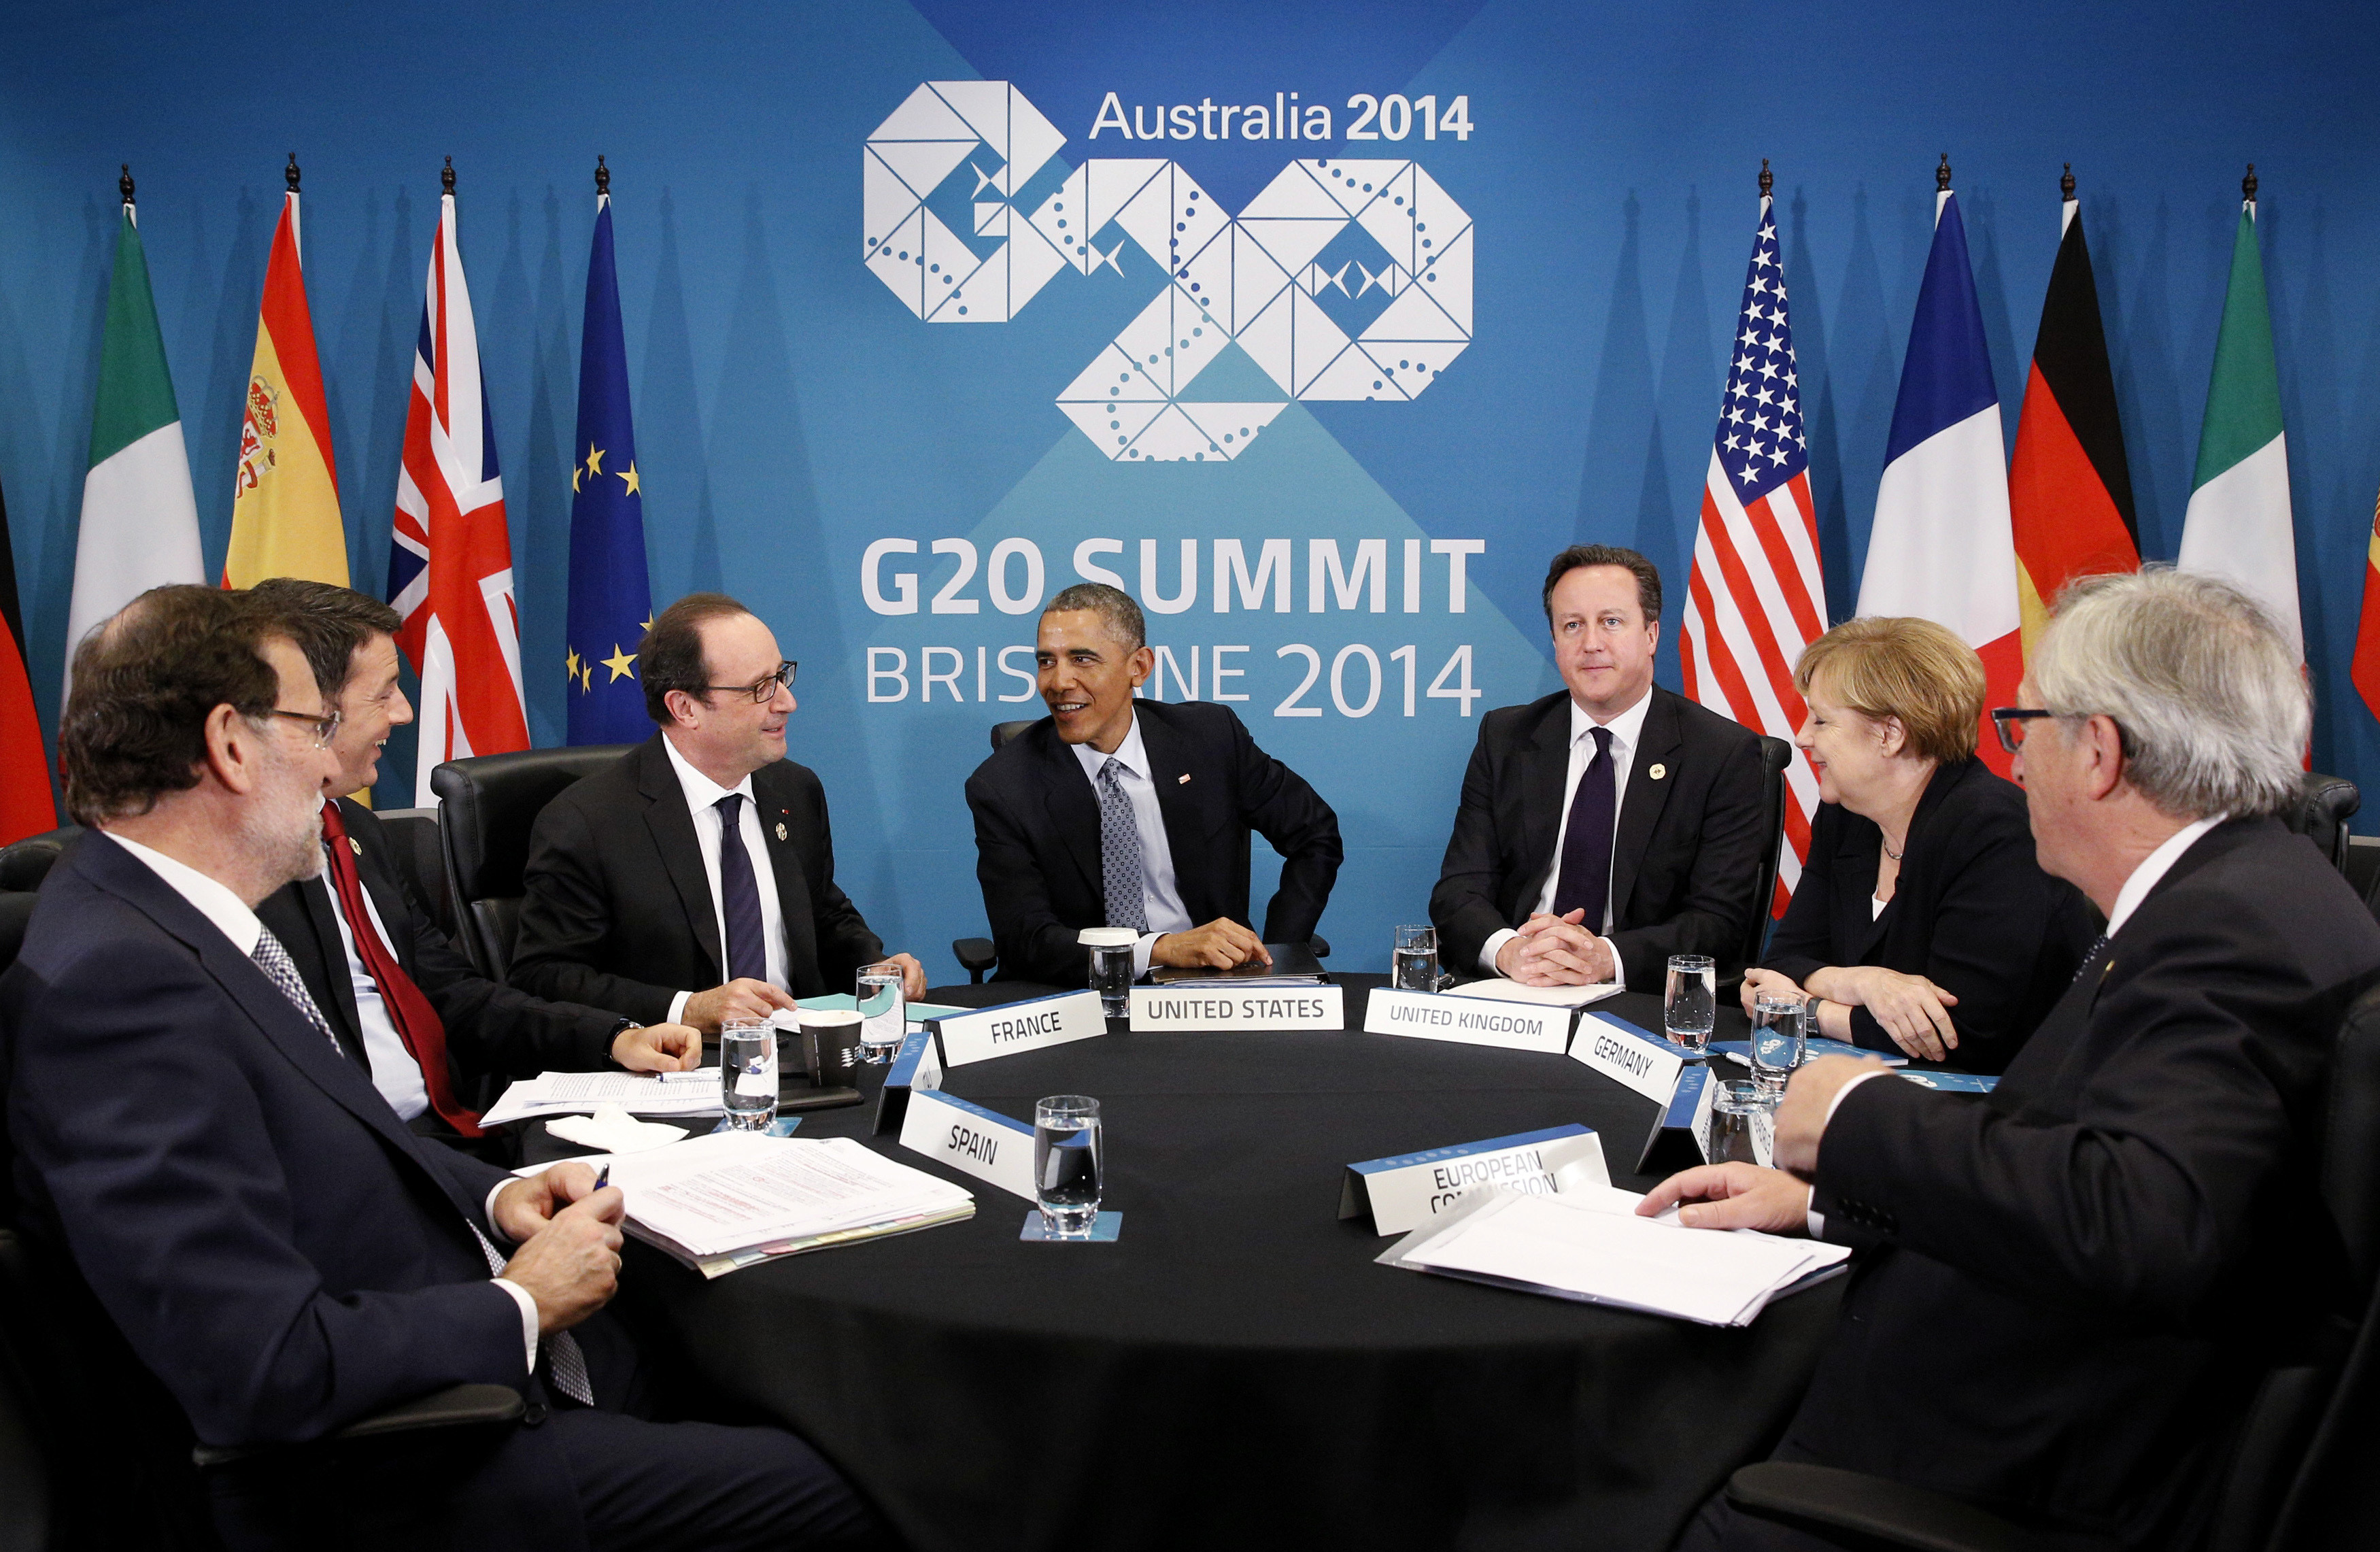 U.S. President Barack Obama meets with European leaders to discuss the situation in Ukraine, at the G20 in Brisbane November 16, 2014. Pictured are: (L-R) Spanish Prime Minister Mariano Rajoy, Italian Prime Minister Matteo Renzi, French President Francois Hollande, Obama, British Prime Minister David Cameron, German Chancellor Angela Merkel and European Commission President Jean-Claude Juncker. REUTERS/Kevin Lamarque  (AUSTRALIA - Tags: POLITICS BUSINESS) - GM1EABG107101